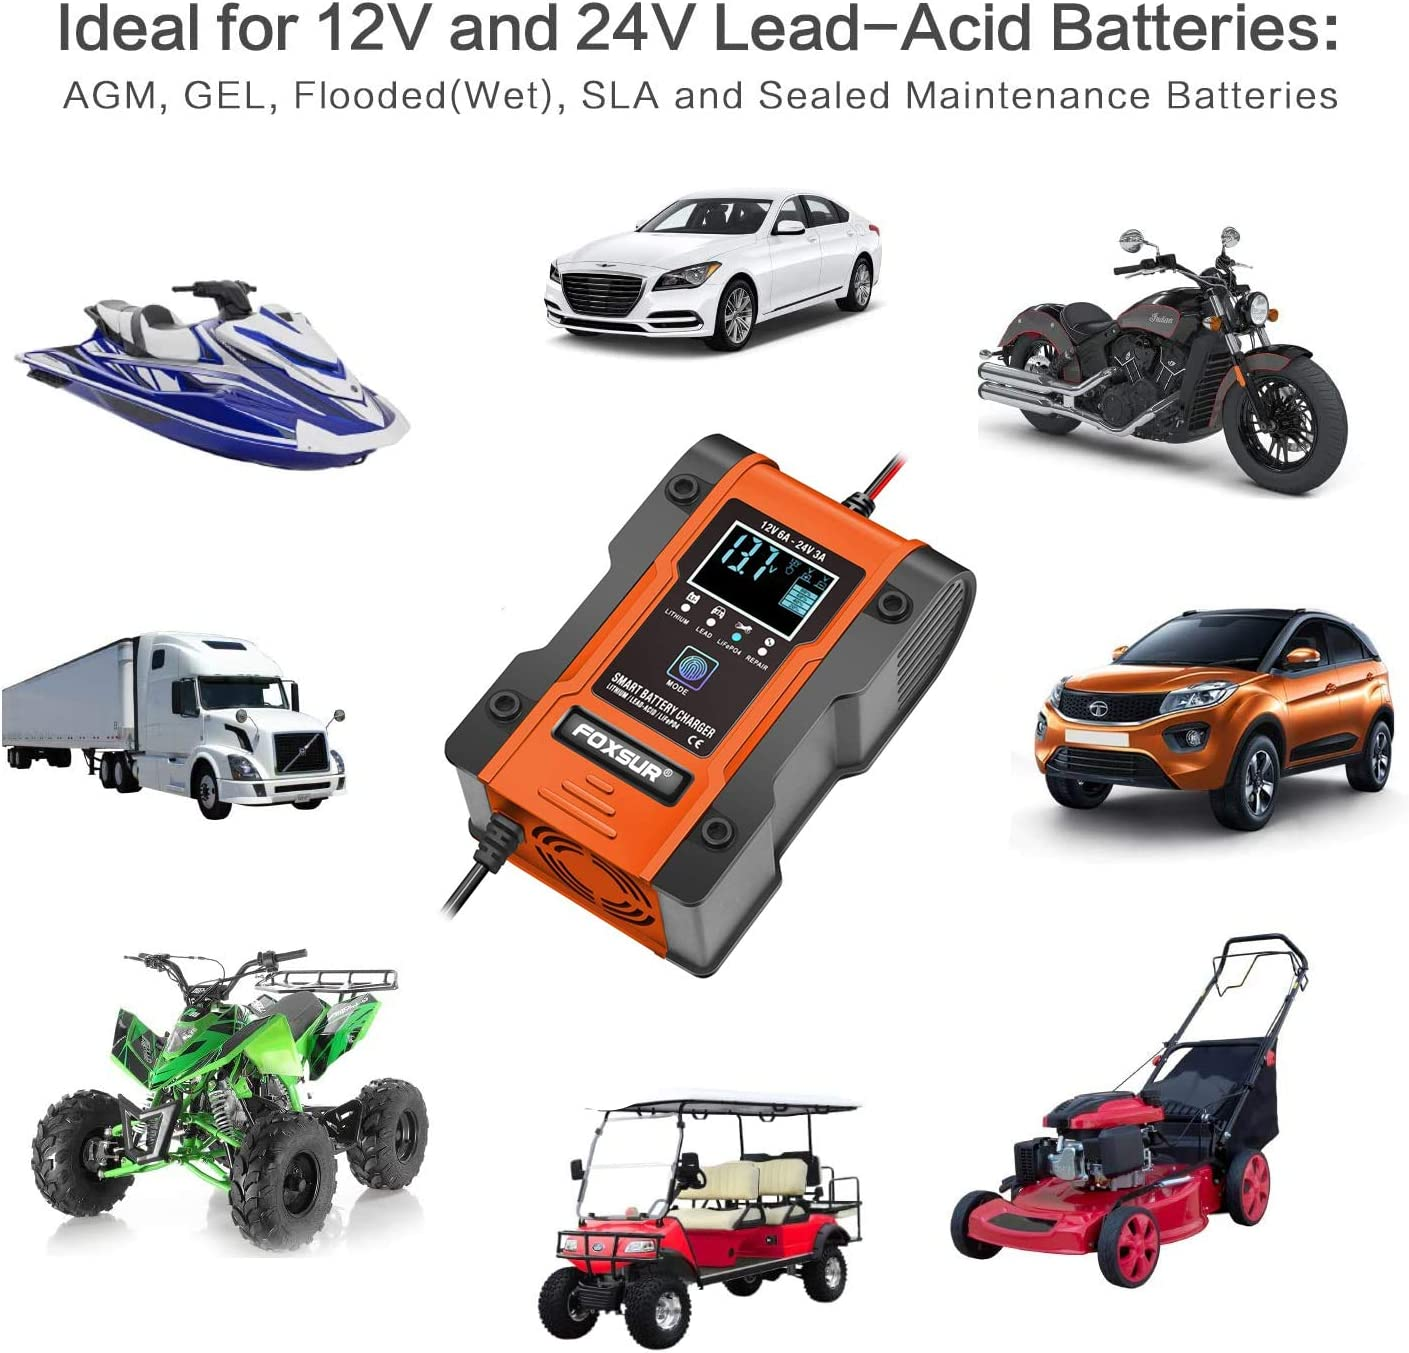 Automotive Battery Charger and Maintainer 12V 6A // 24V 3A Smart Battery Charger for Car Lead-Acid LiFePO4 Battery Automatic Trickle Charger for Lithium Motorcycle Truck Lawn Mower